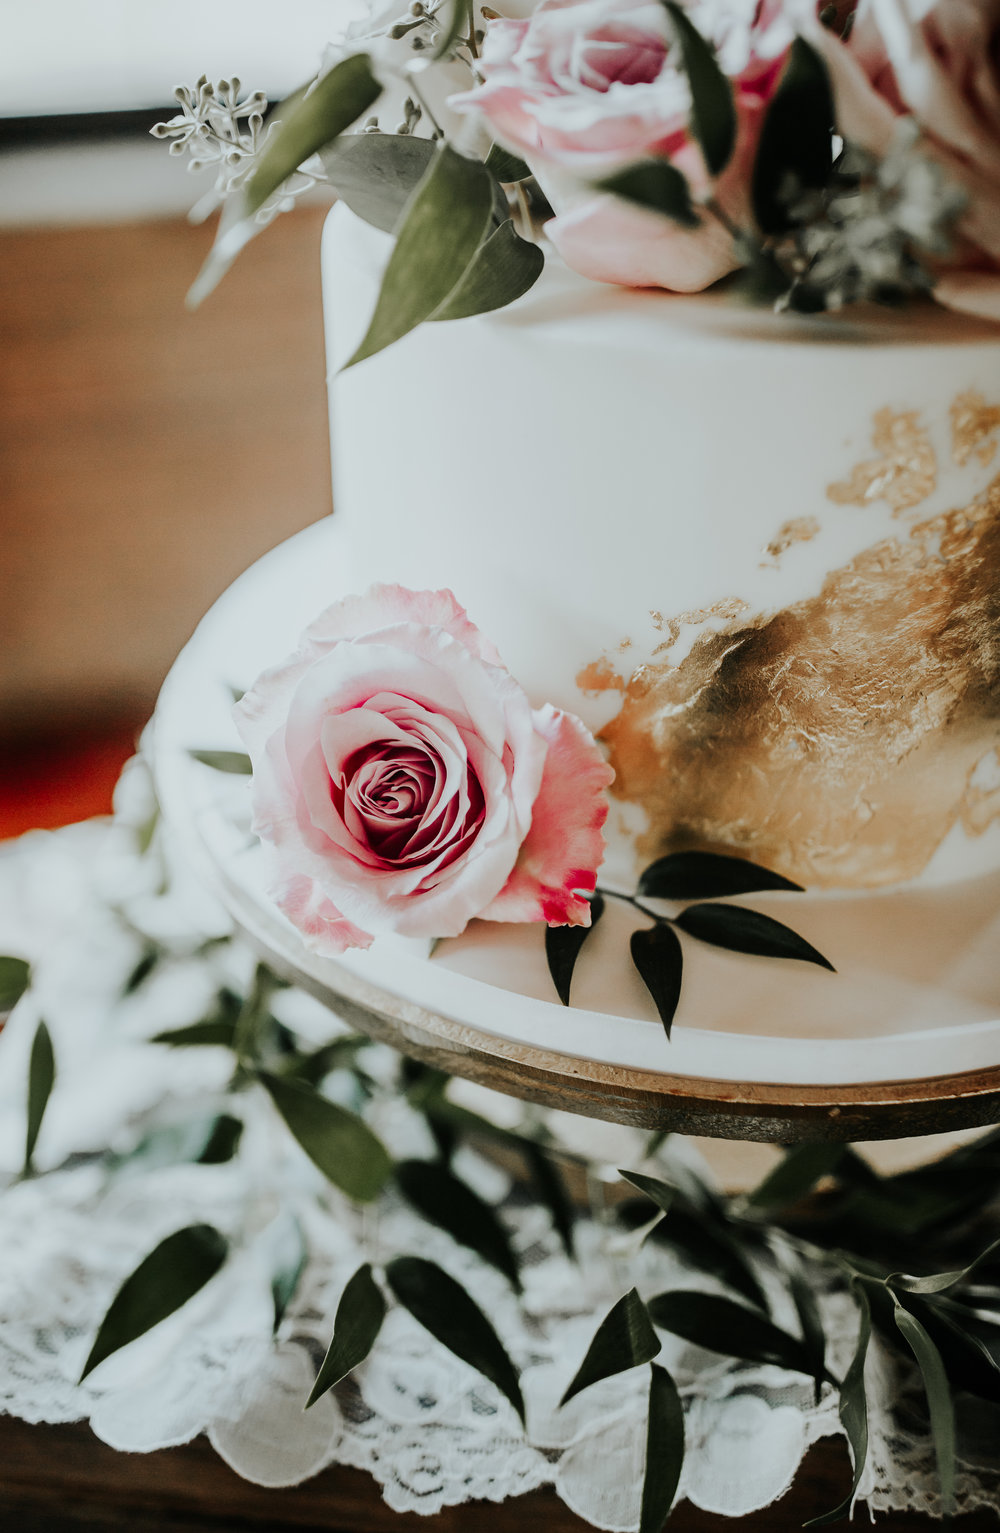 The most perfect rose to adorn the cake.